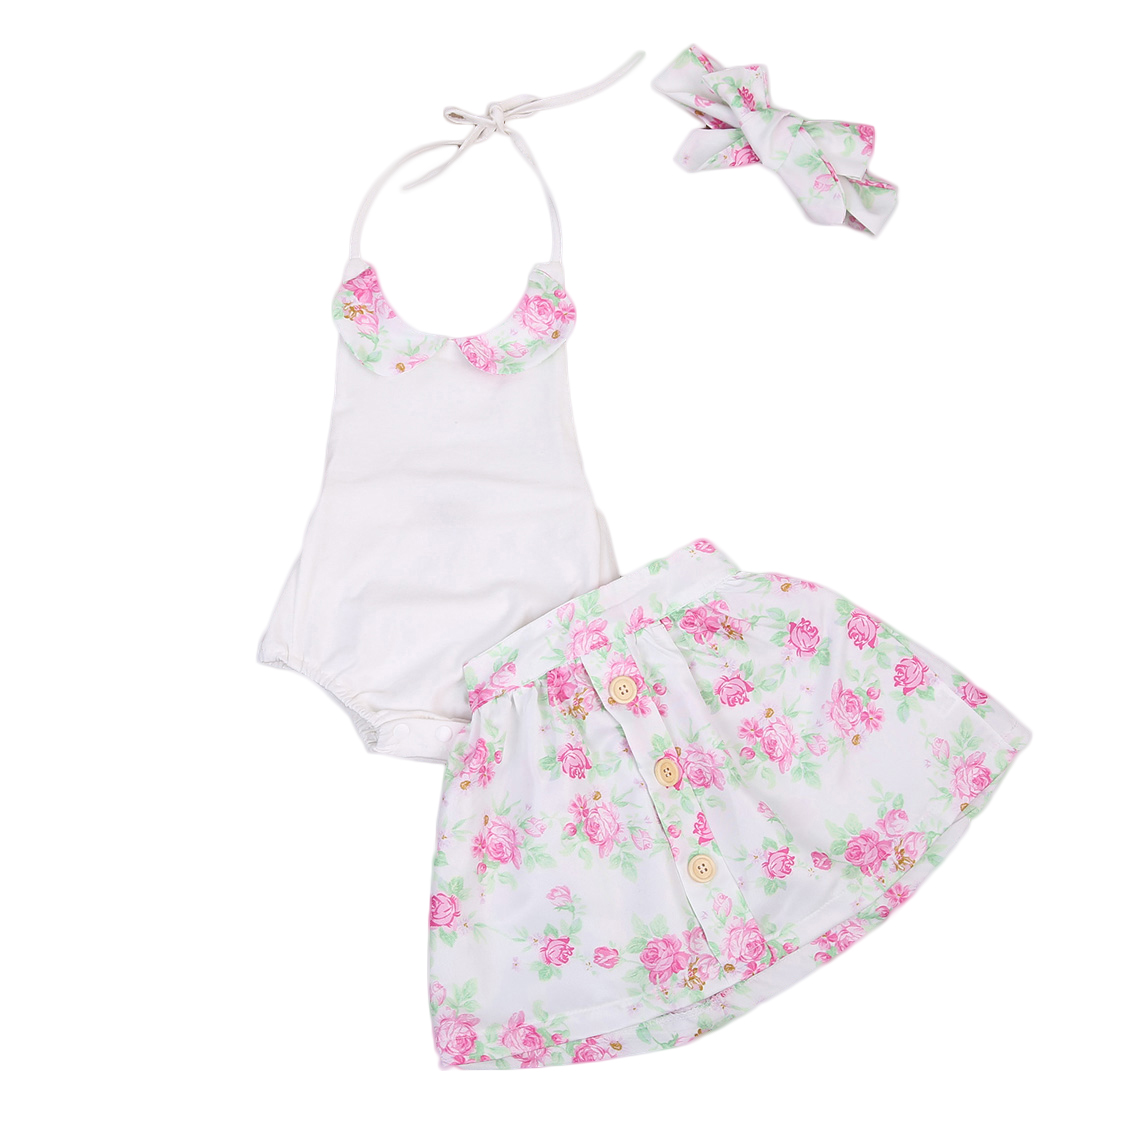 2018 new summer cute babies clothes Flower print Baby Girls Outfits set Infant halter bodysuit Top Skirt Outfit 3PCS Clothes Set